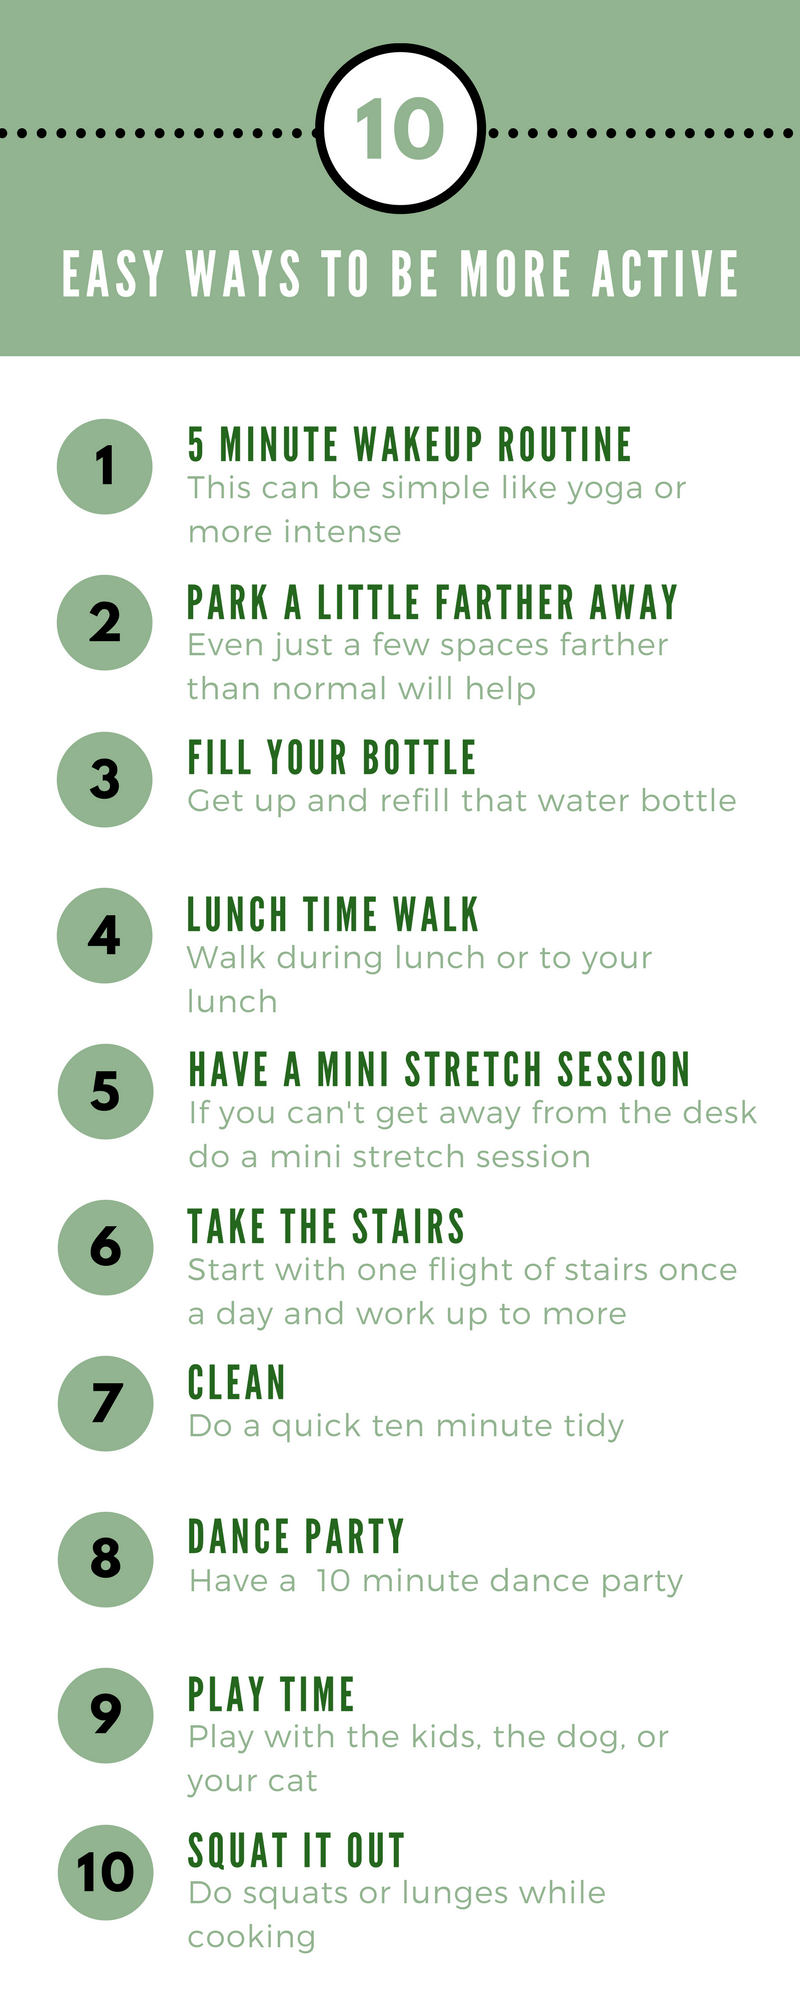 Moving more is good for you. Save this list for when you need more idea for how to be more active. #active #healthyliving #abetteryou #moveit #exercise